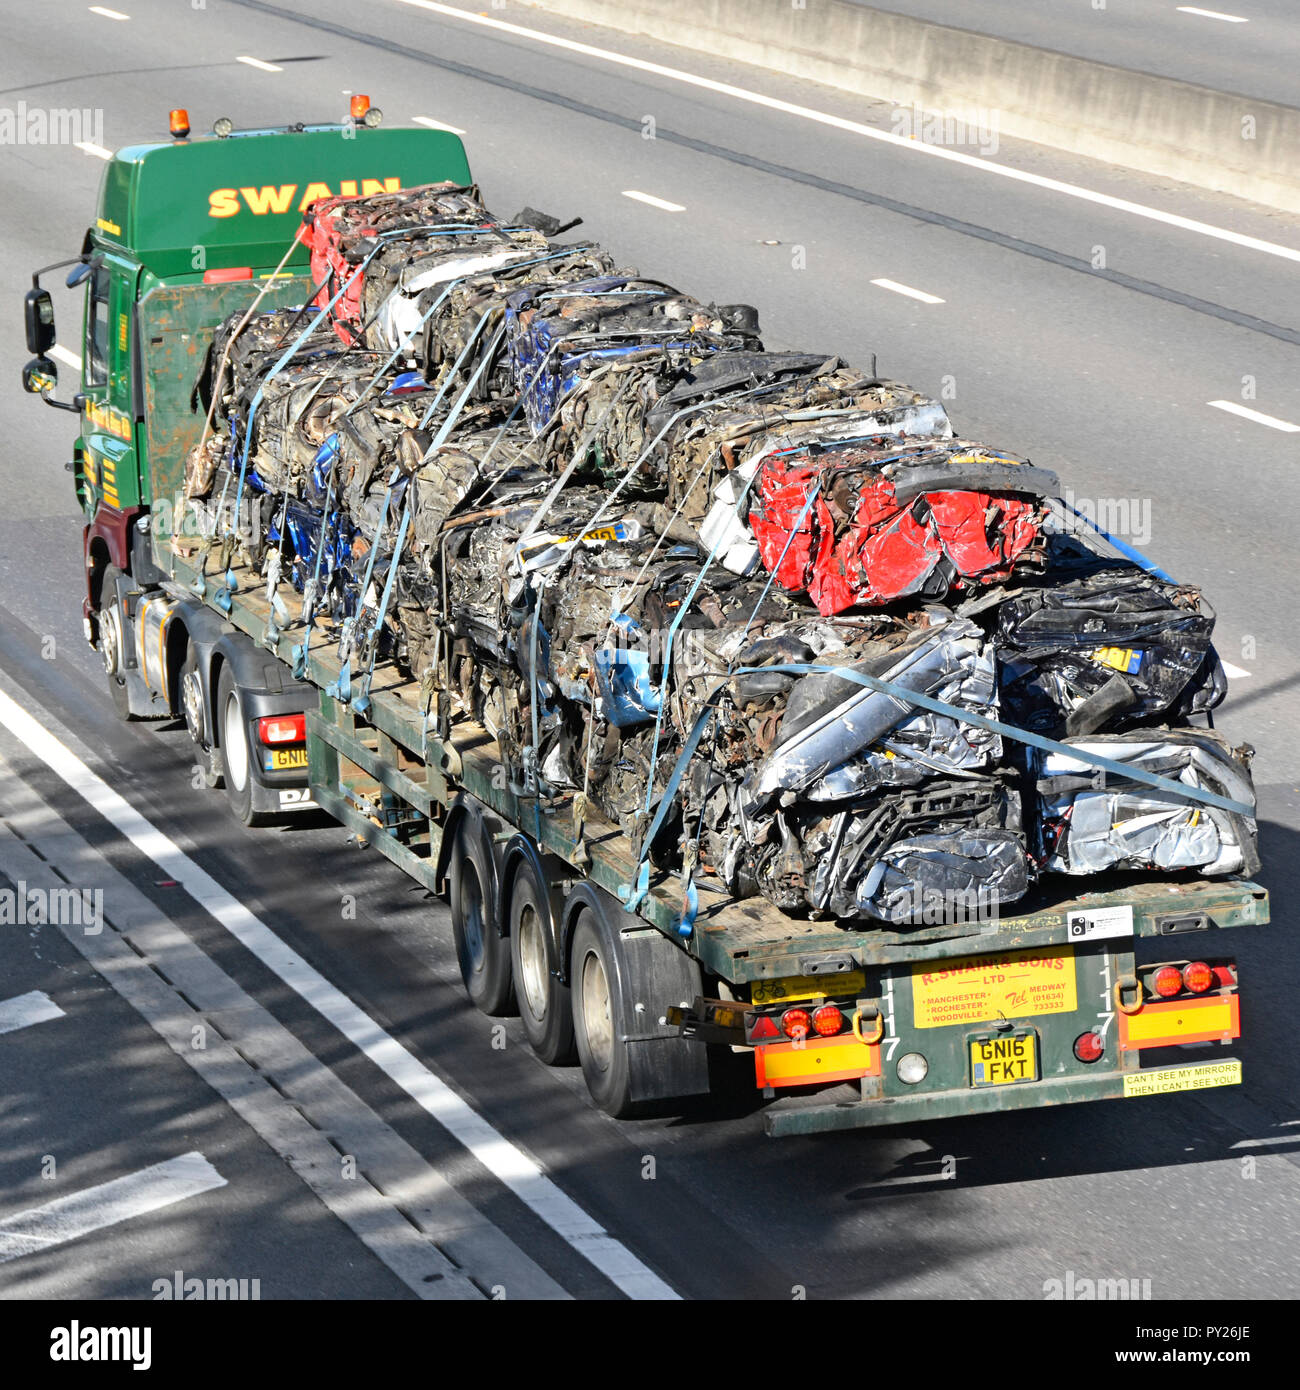 HGV lorry transport truck & articulated flat bed trailer driving along motorway heavy load of crushed cube scrap metal cars for recycling England UK Stock Photo